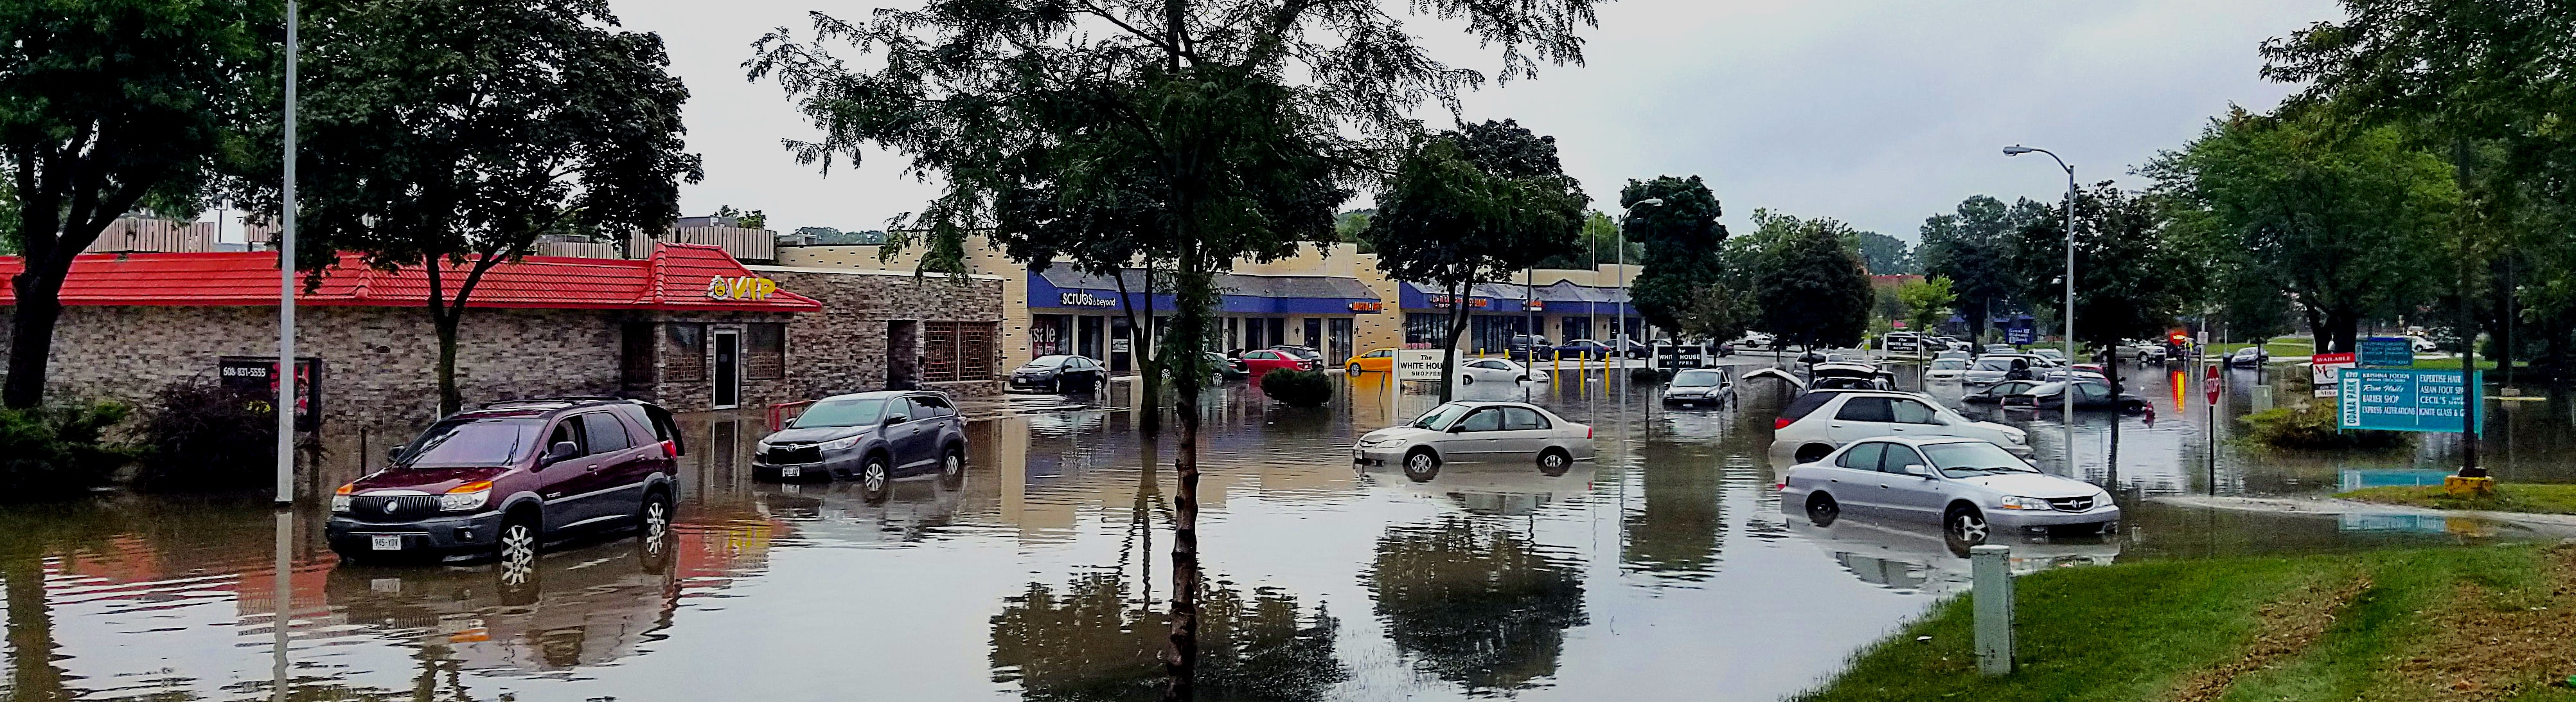 Donate a Car in Disaster Relief